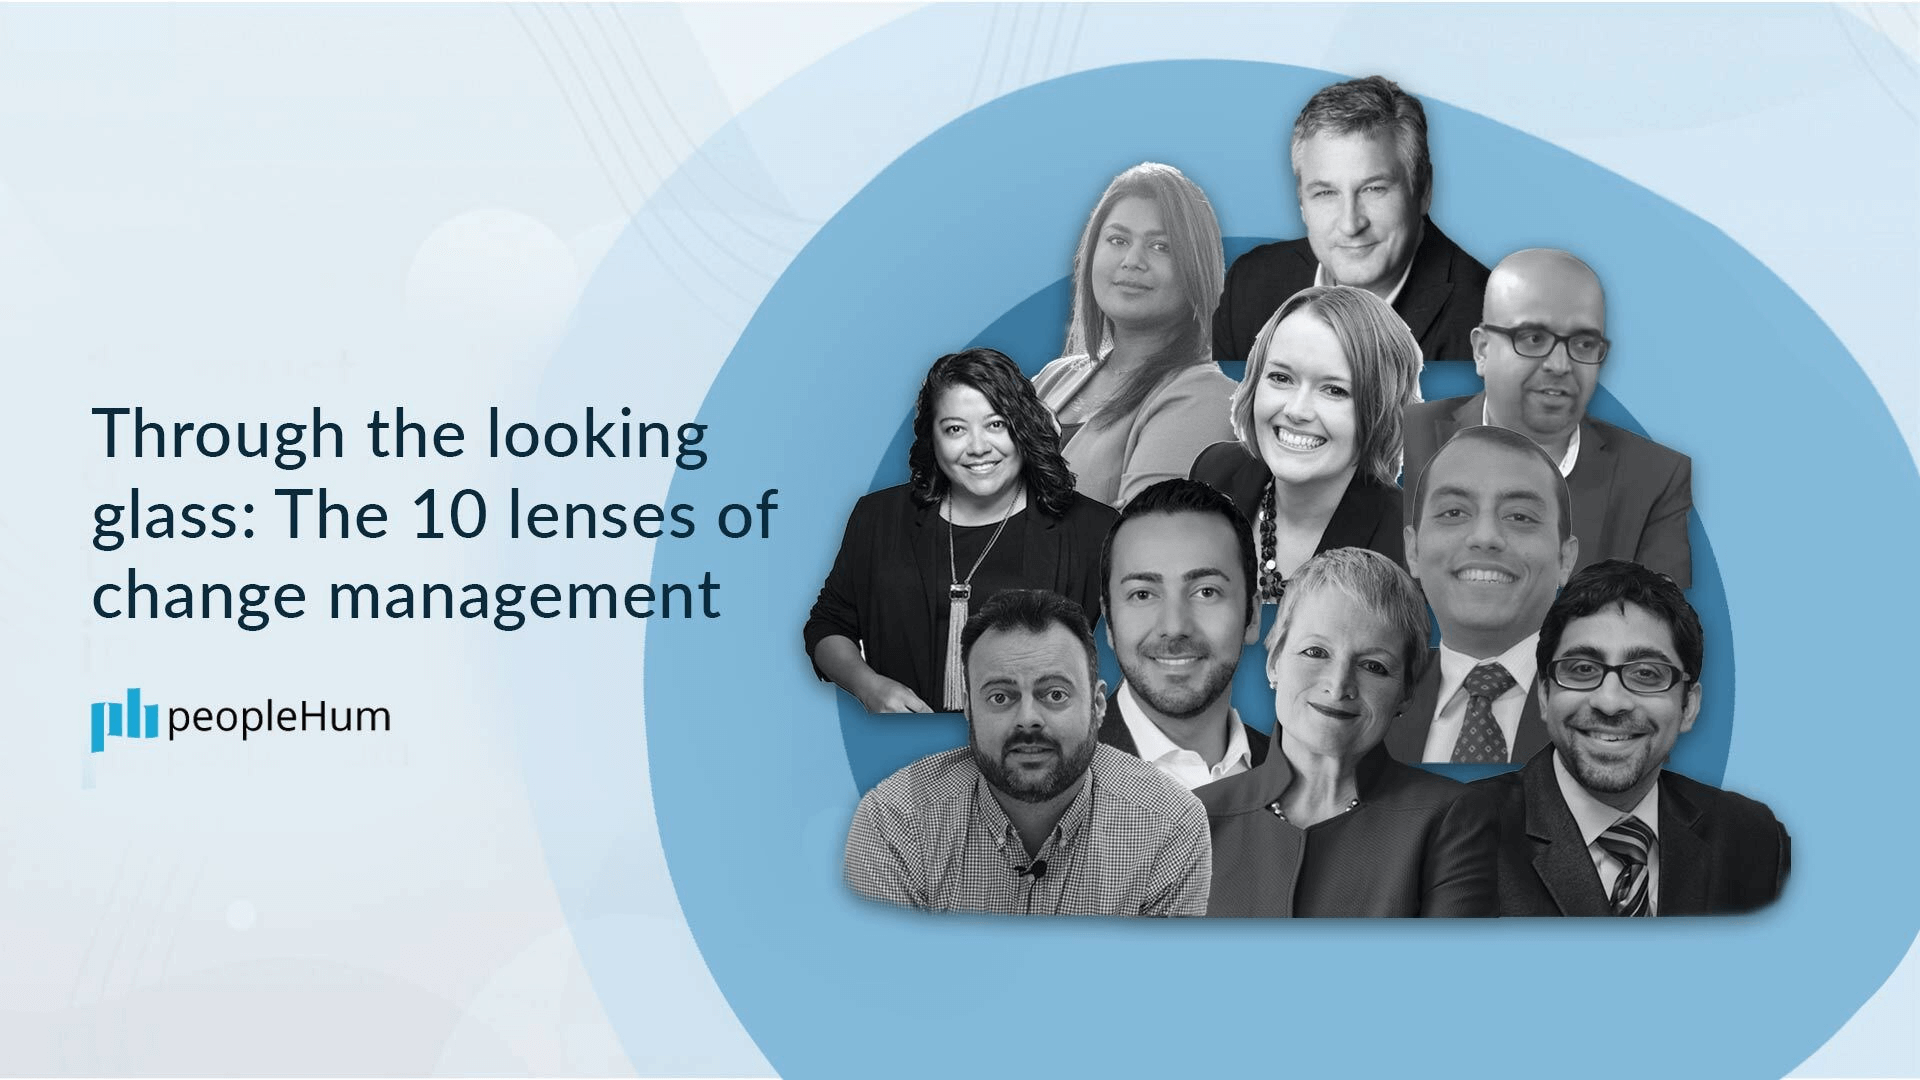 Through the looking glass: The 10 lenses of change management